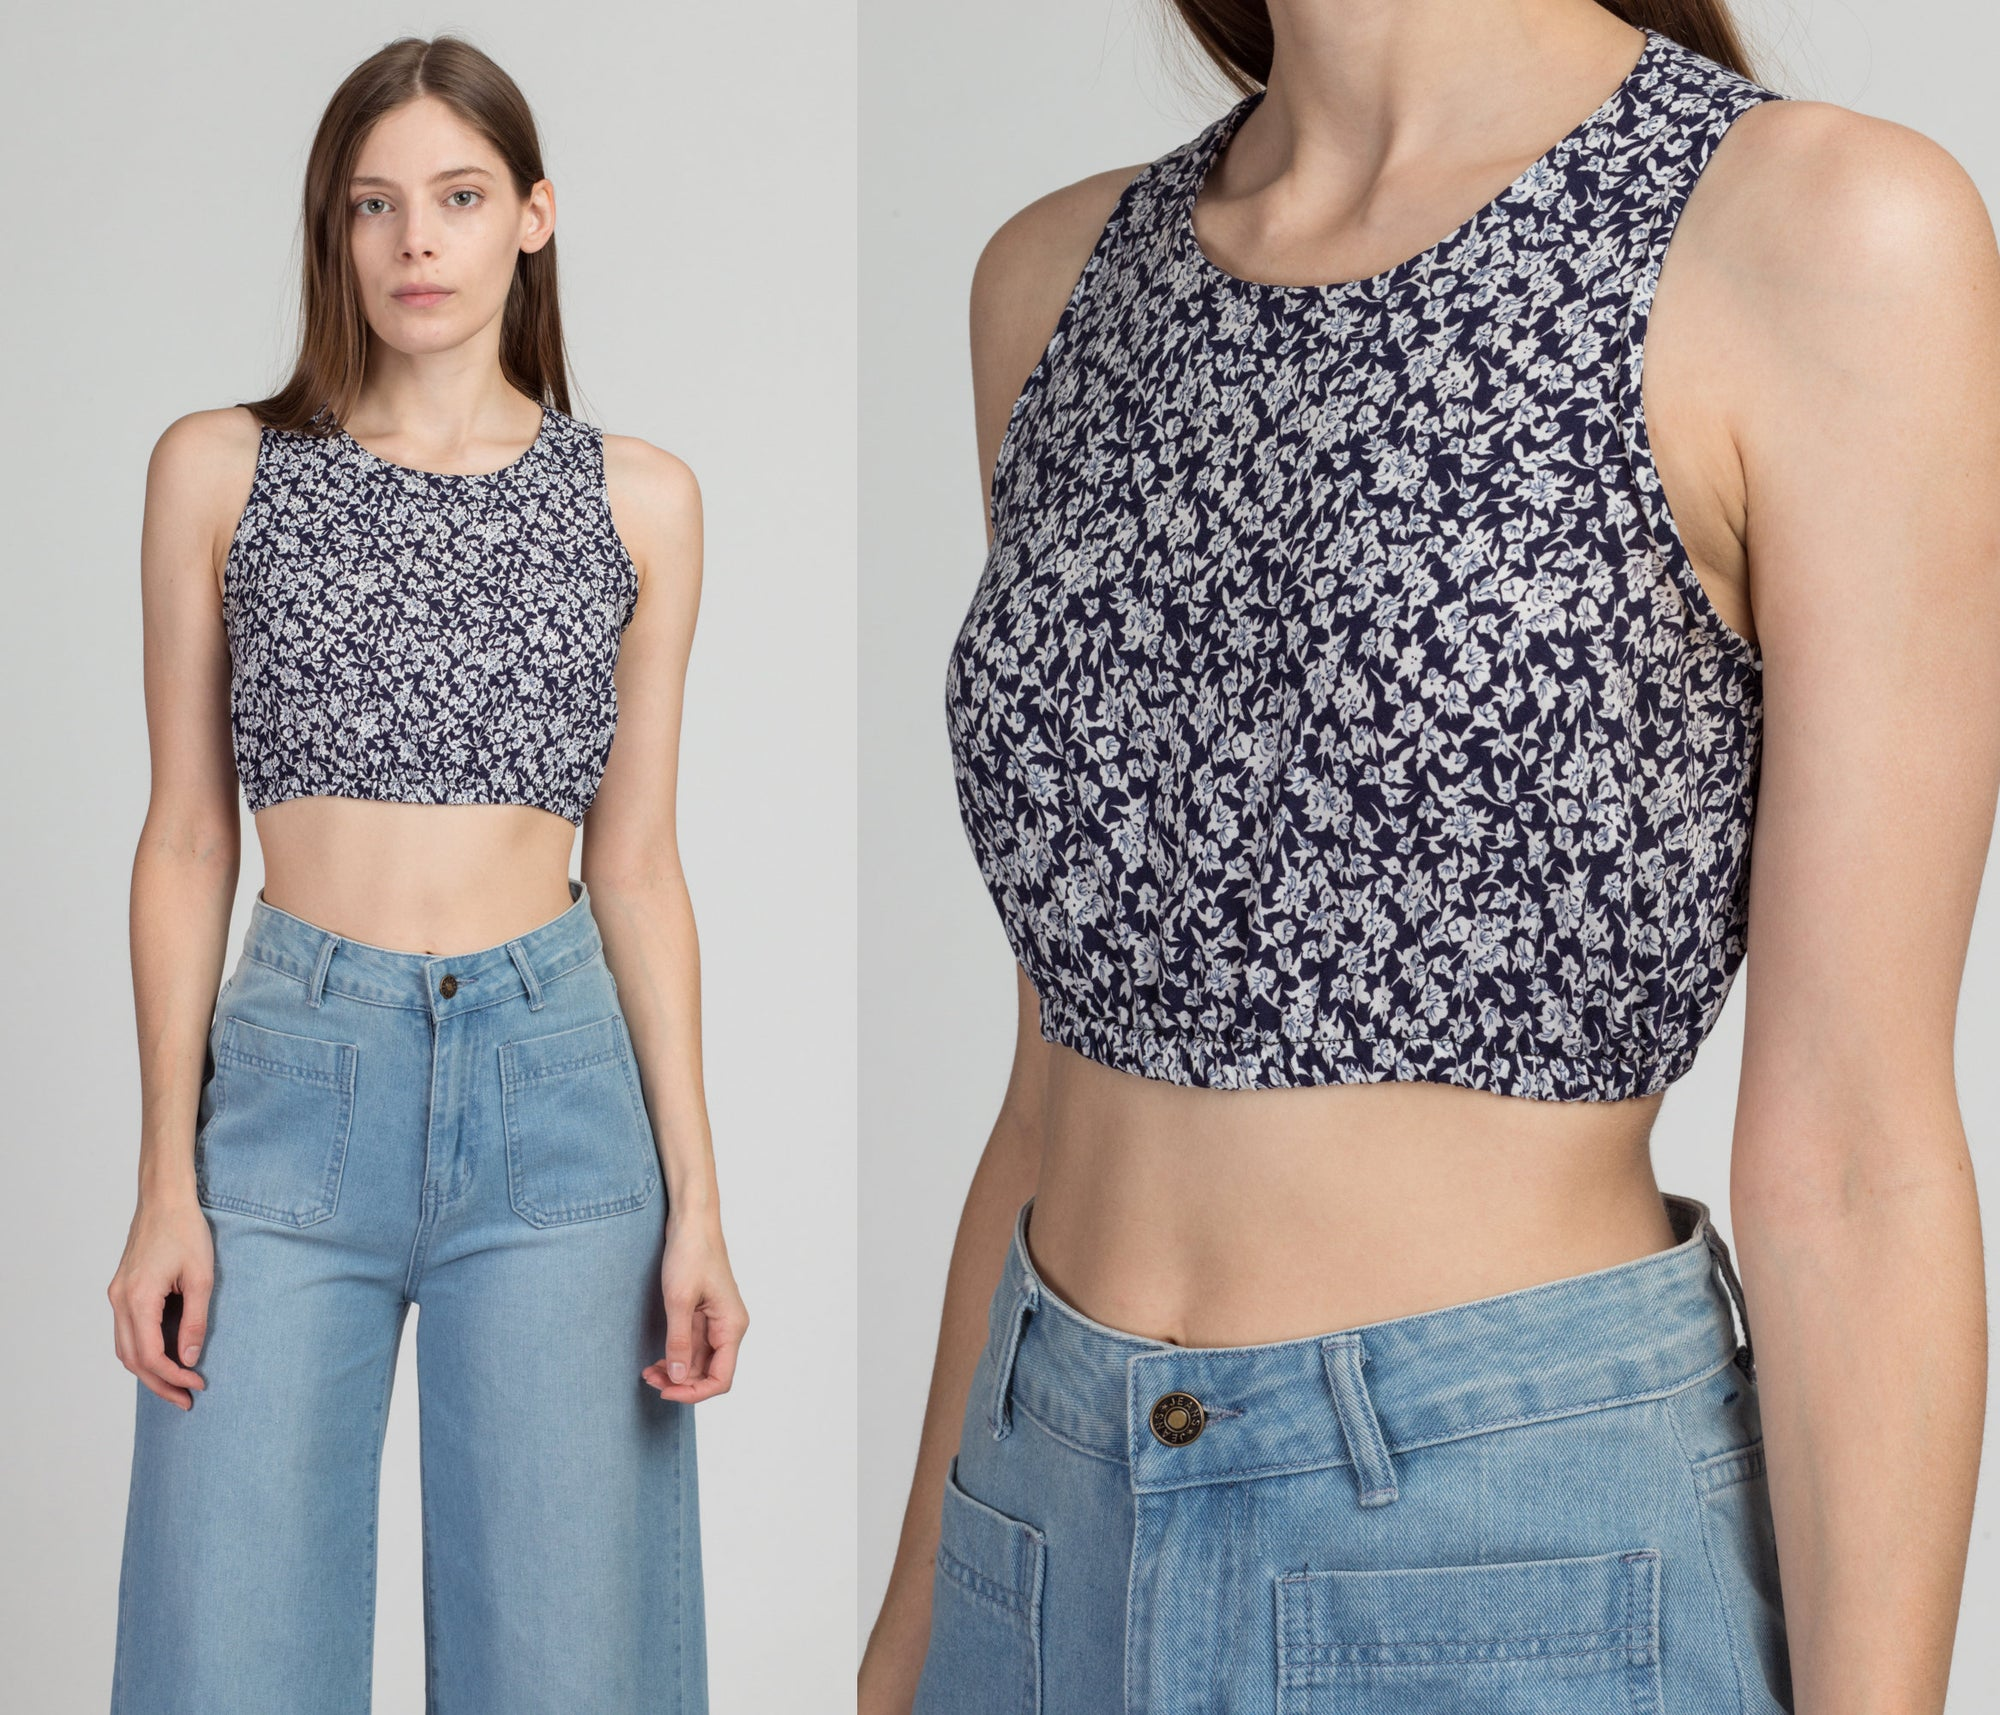 90s Blue Floral Crop Top - Petite Small | Vintage Grunge Fitted Waist Cropped Tank Blouse